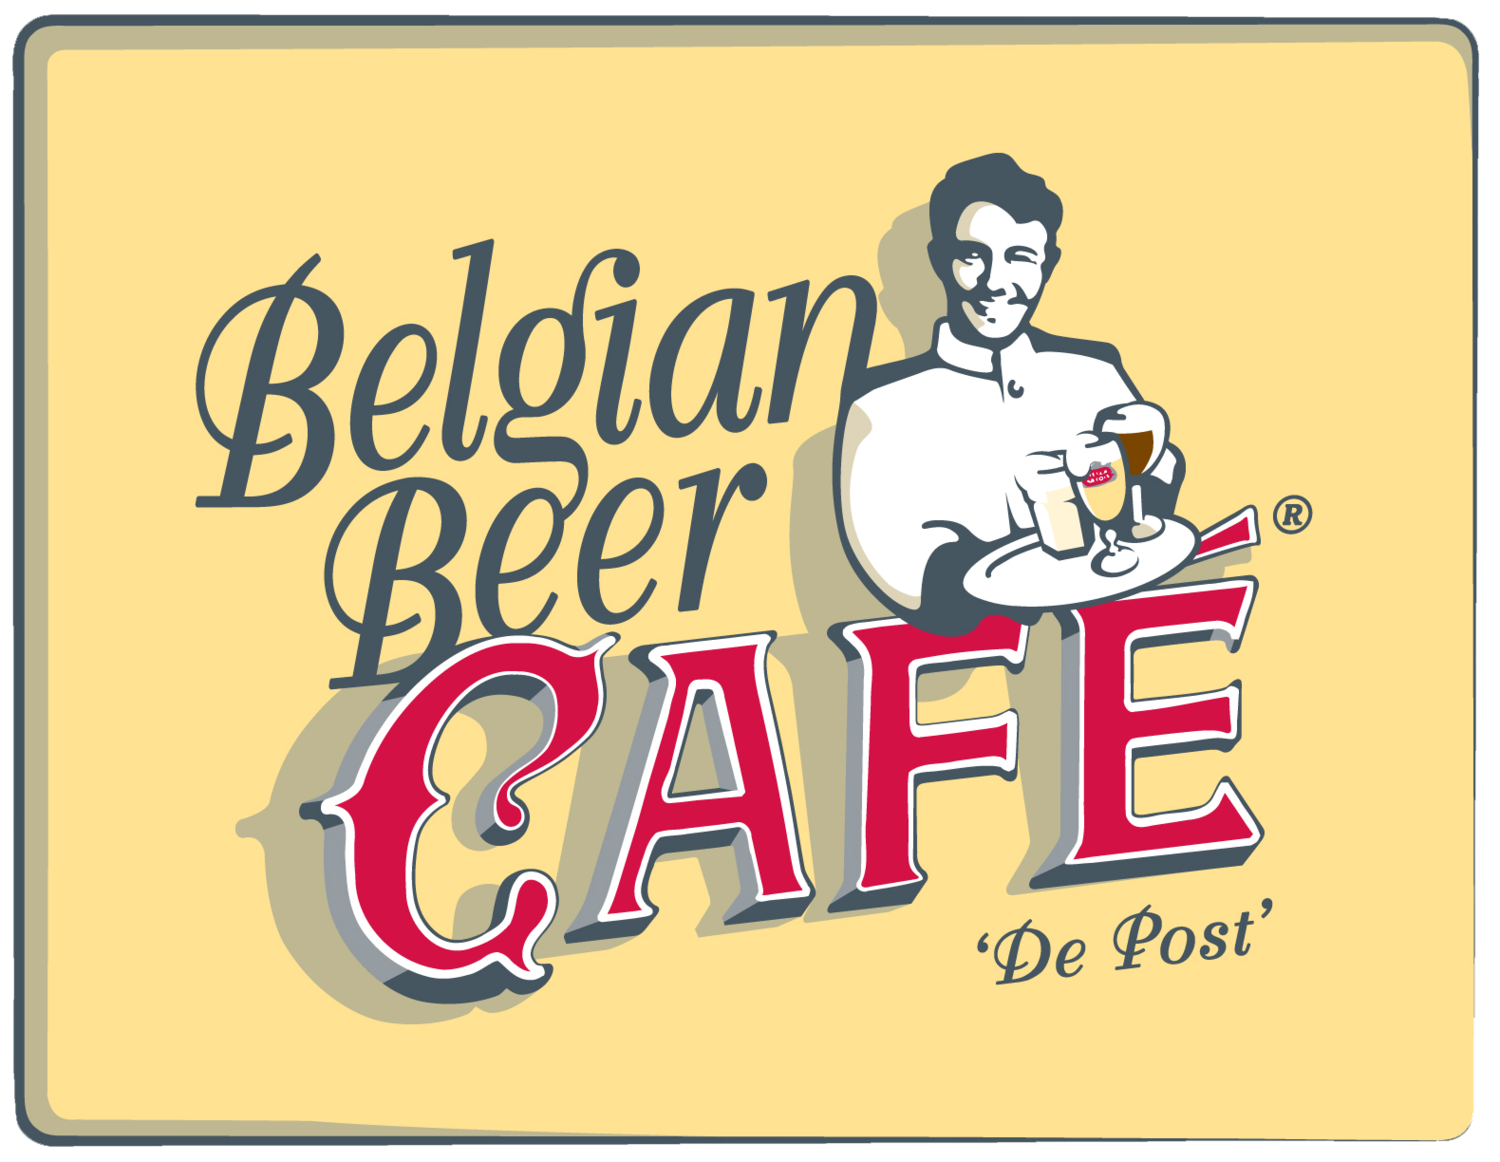 De Post Belgian Beer Cafe